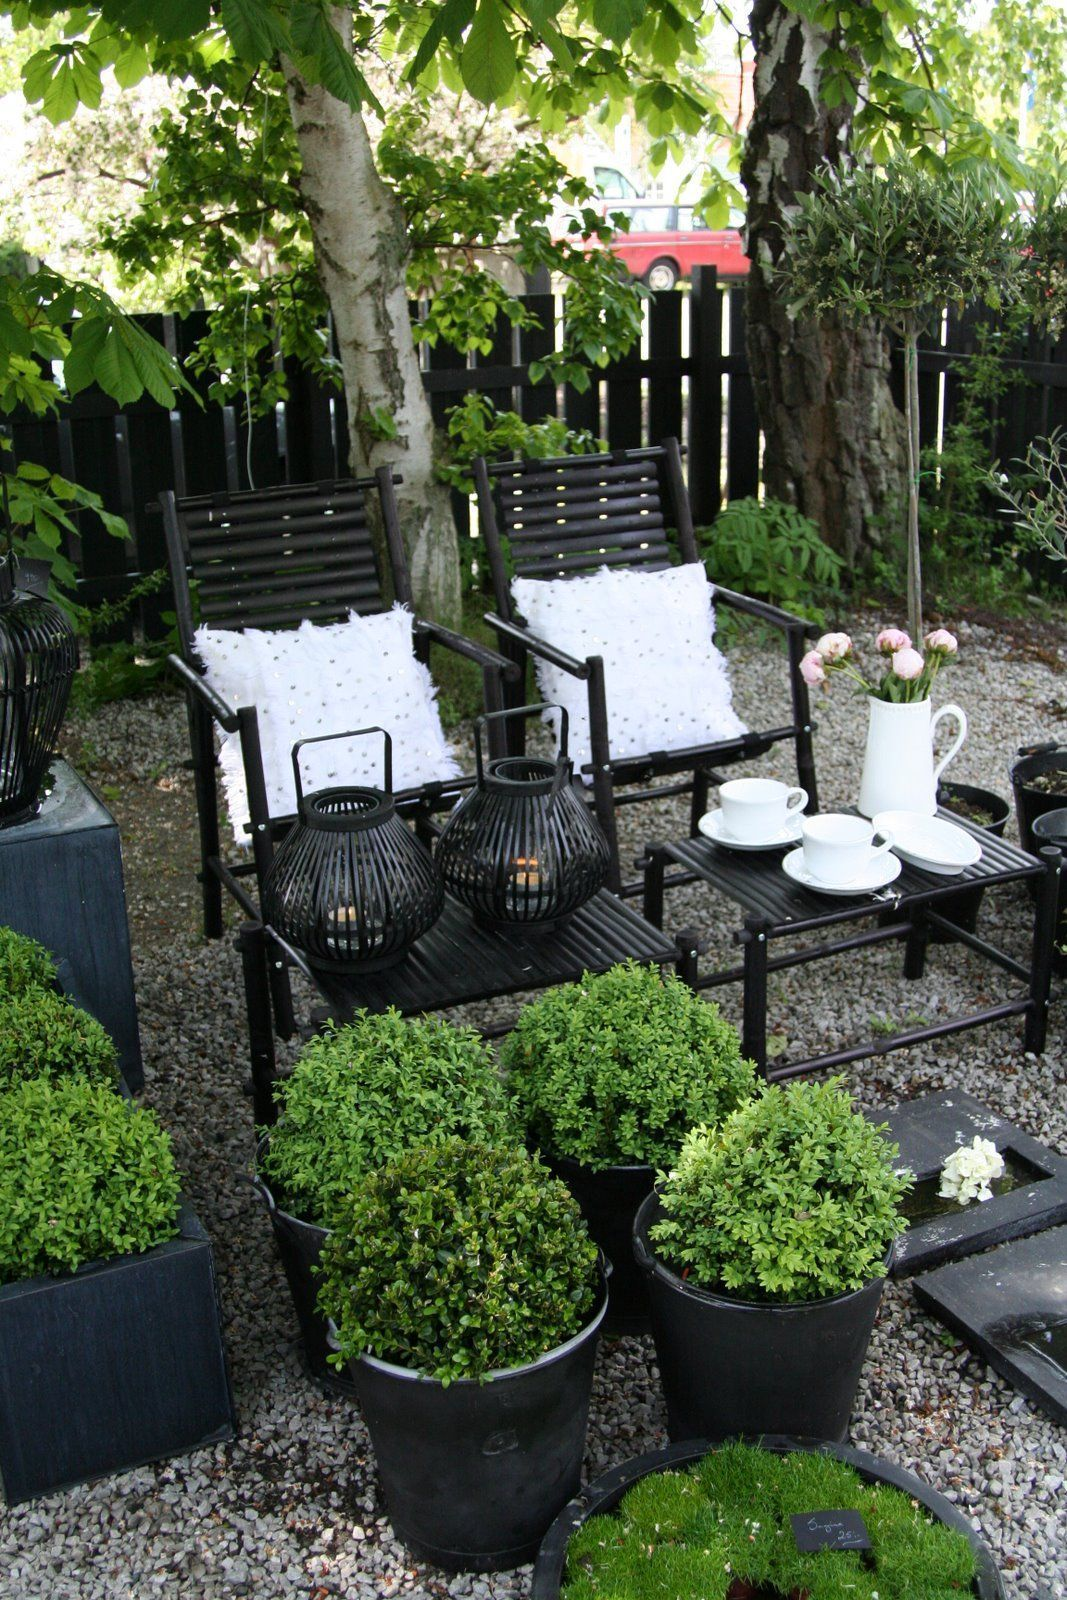 53 Cool Backyard Pond Design Ideas: Cool DIY & Backyard Fire Pit Ideas With Comfy Seating Area